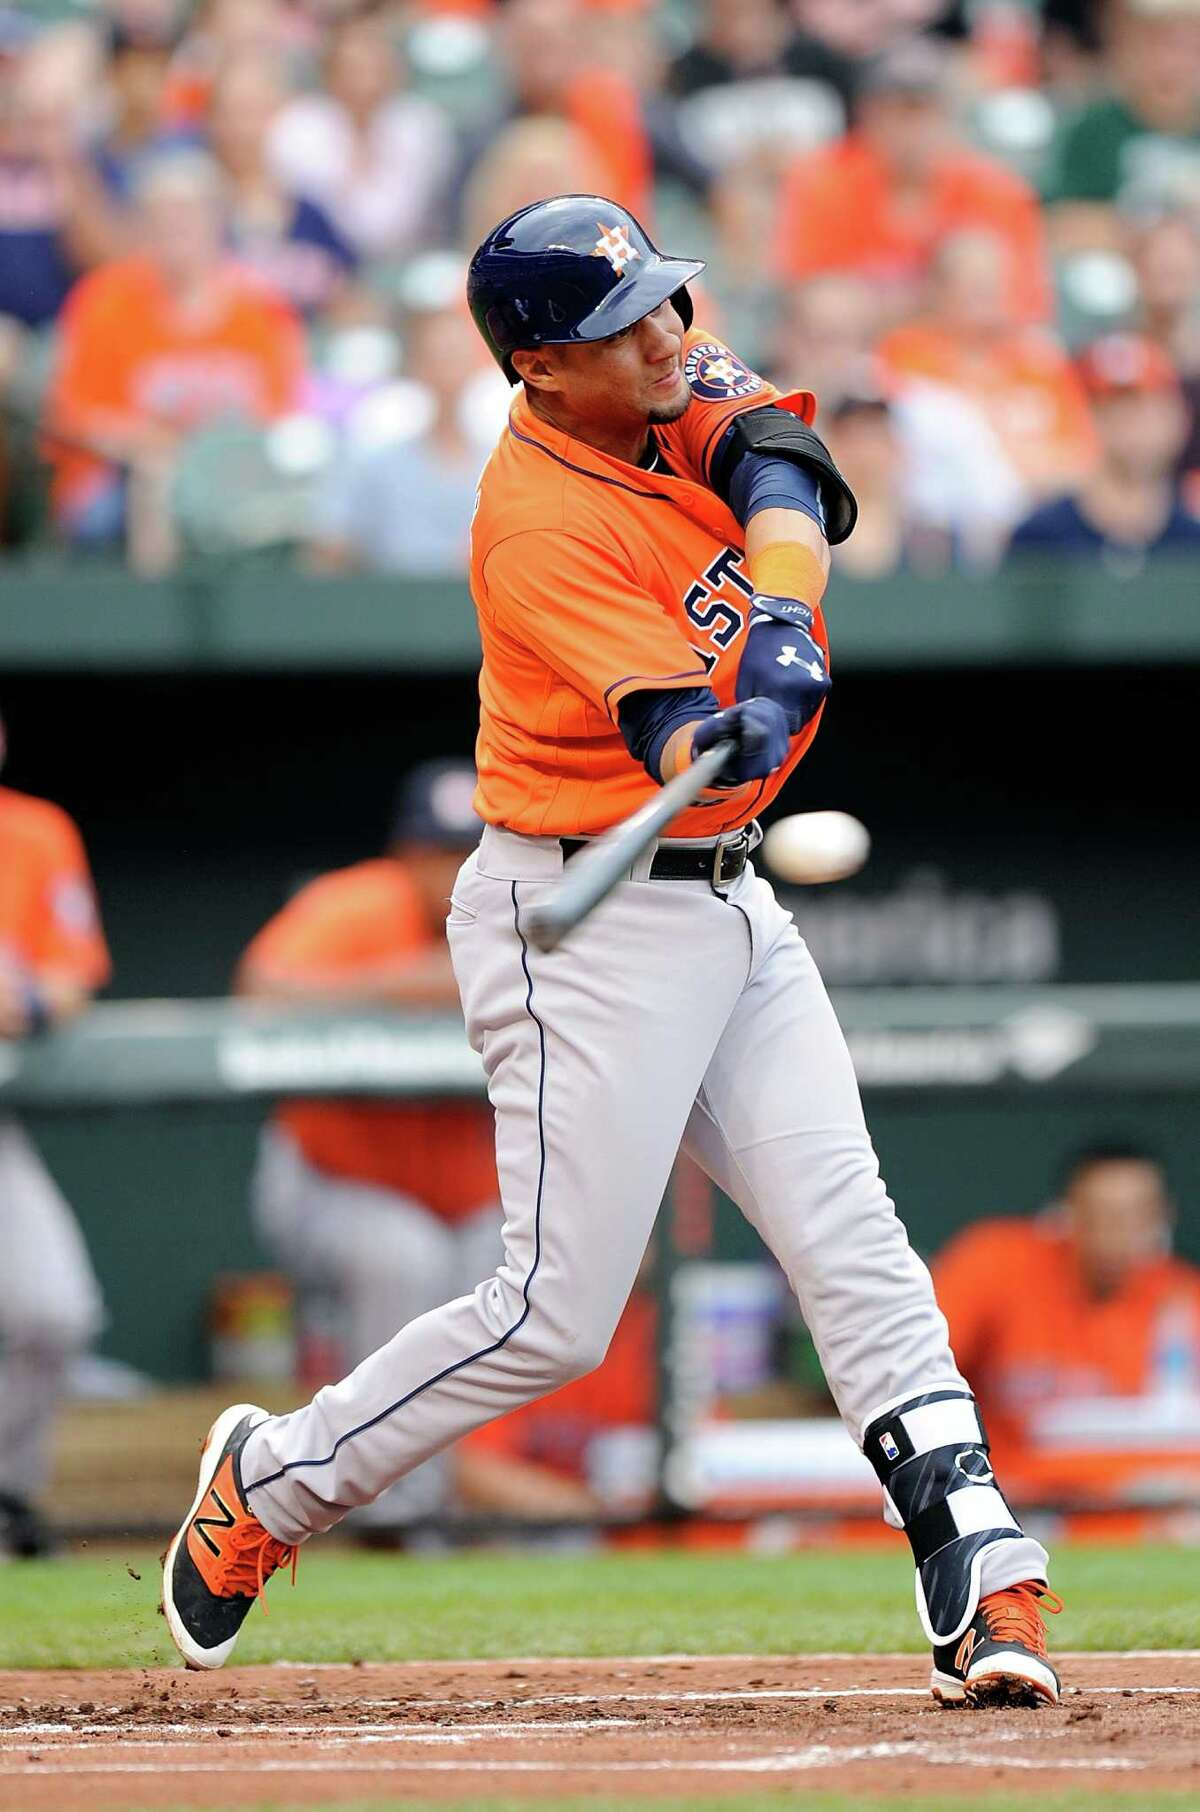 BALTIMORE, MD - AUGUST 21: Yulieski Gurriel #10 of the Houston Astros hits a single in his first major league at bat in the second inning against the Baltimore Orioles at Oriole Park at Camden Yards on August 21, 2016 in Baltimore, Maryland.